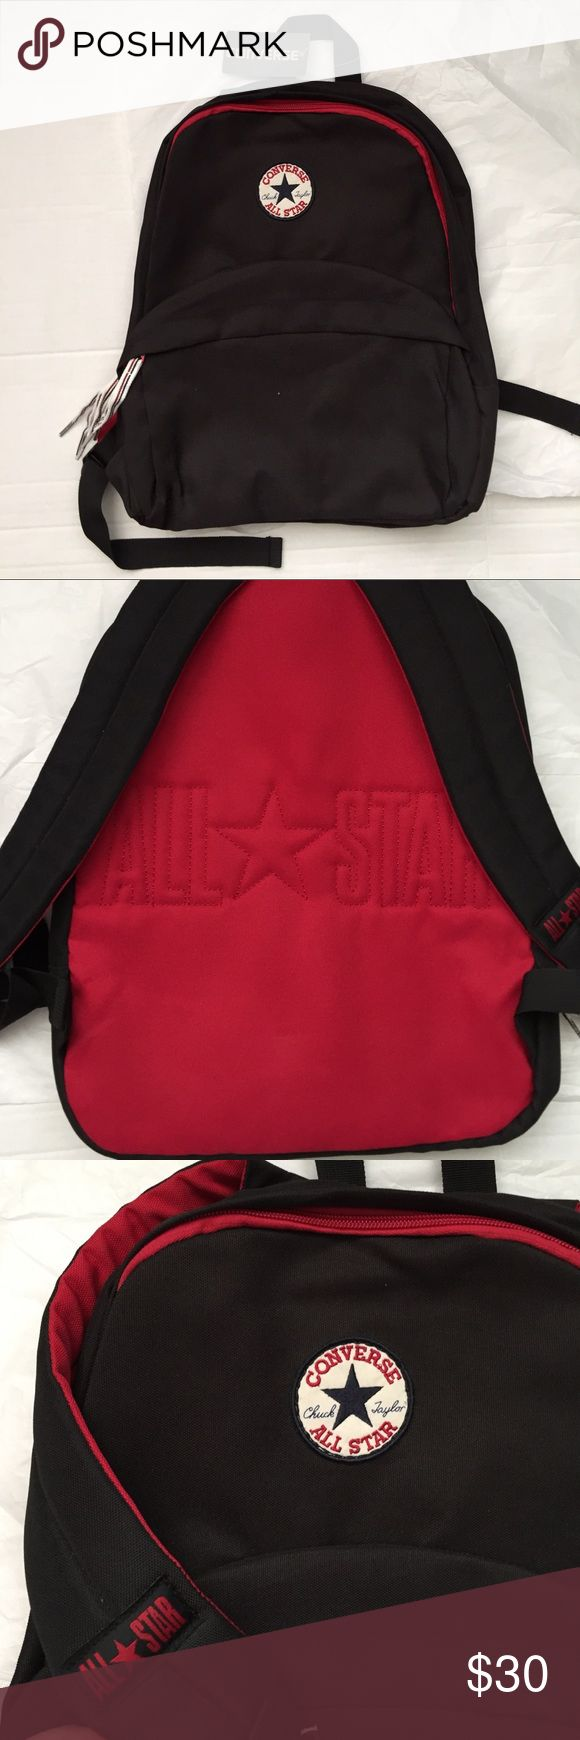 Converse All Star BackPack! NWT Converse All-Star black backpack! New with tags! Authentic! 14x12. Zipper closures. Padded and adjustable straps! Converse Bags Backpacks